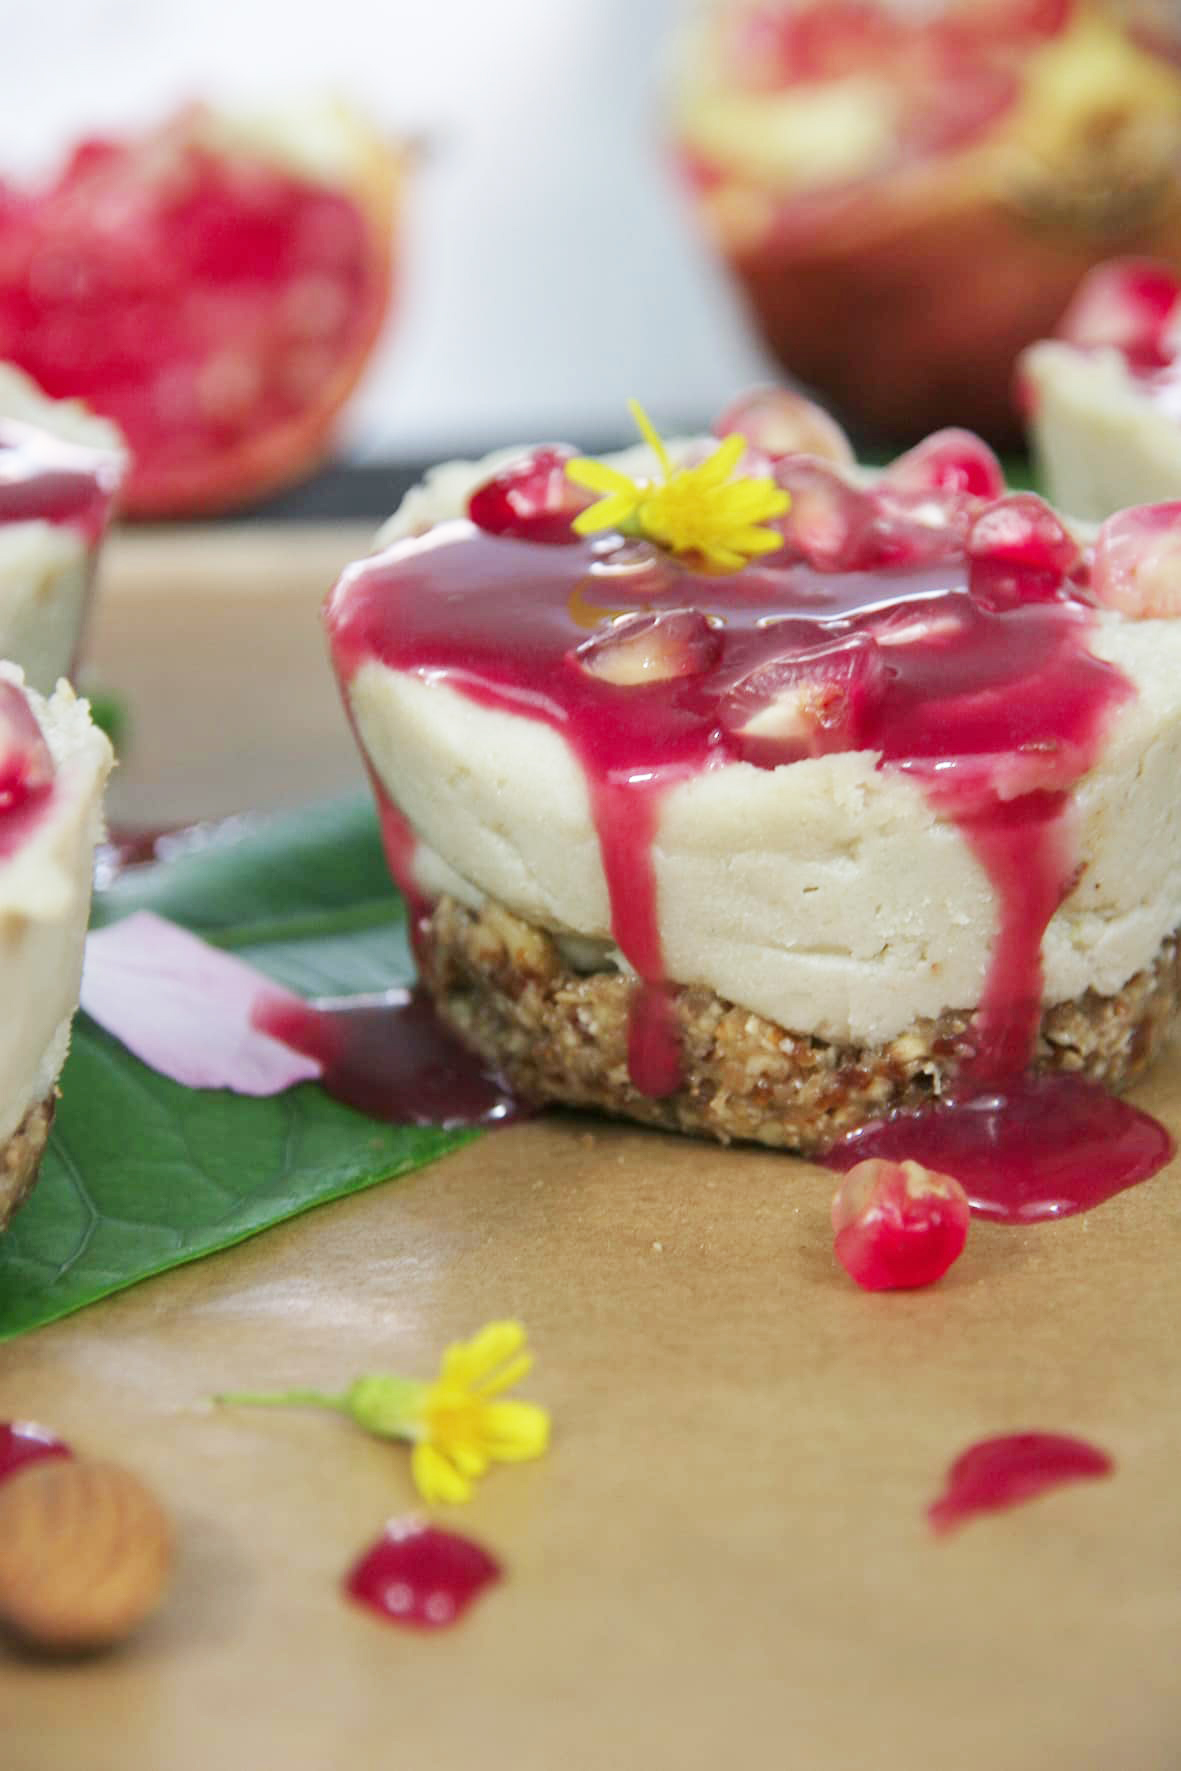 Vegan-mini-cheesecake-pomegranate-raspberry-syrup3-recipe-dessert